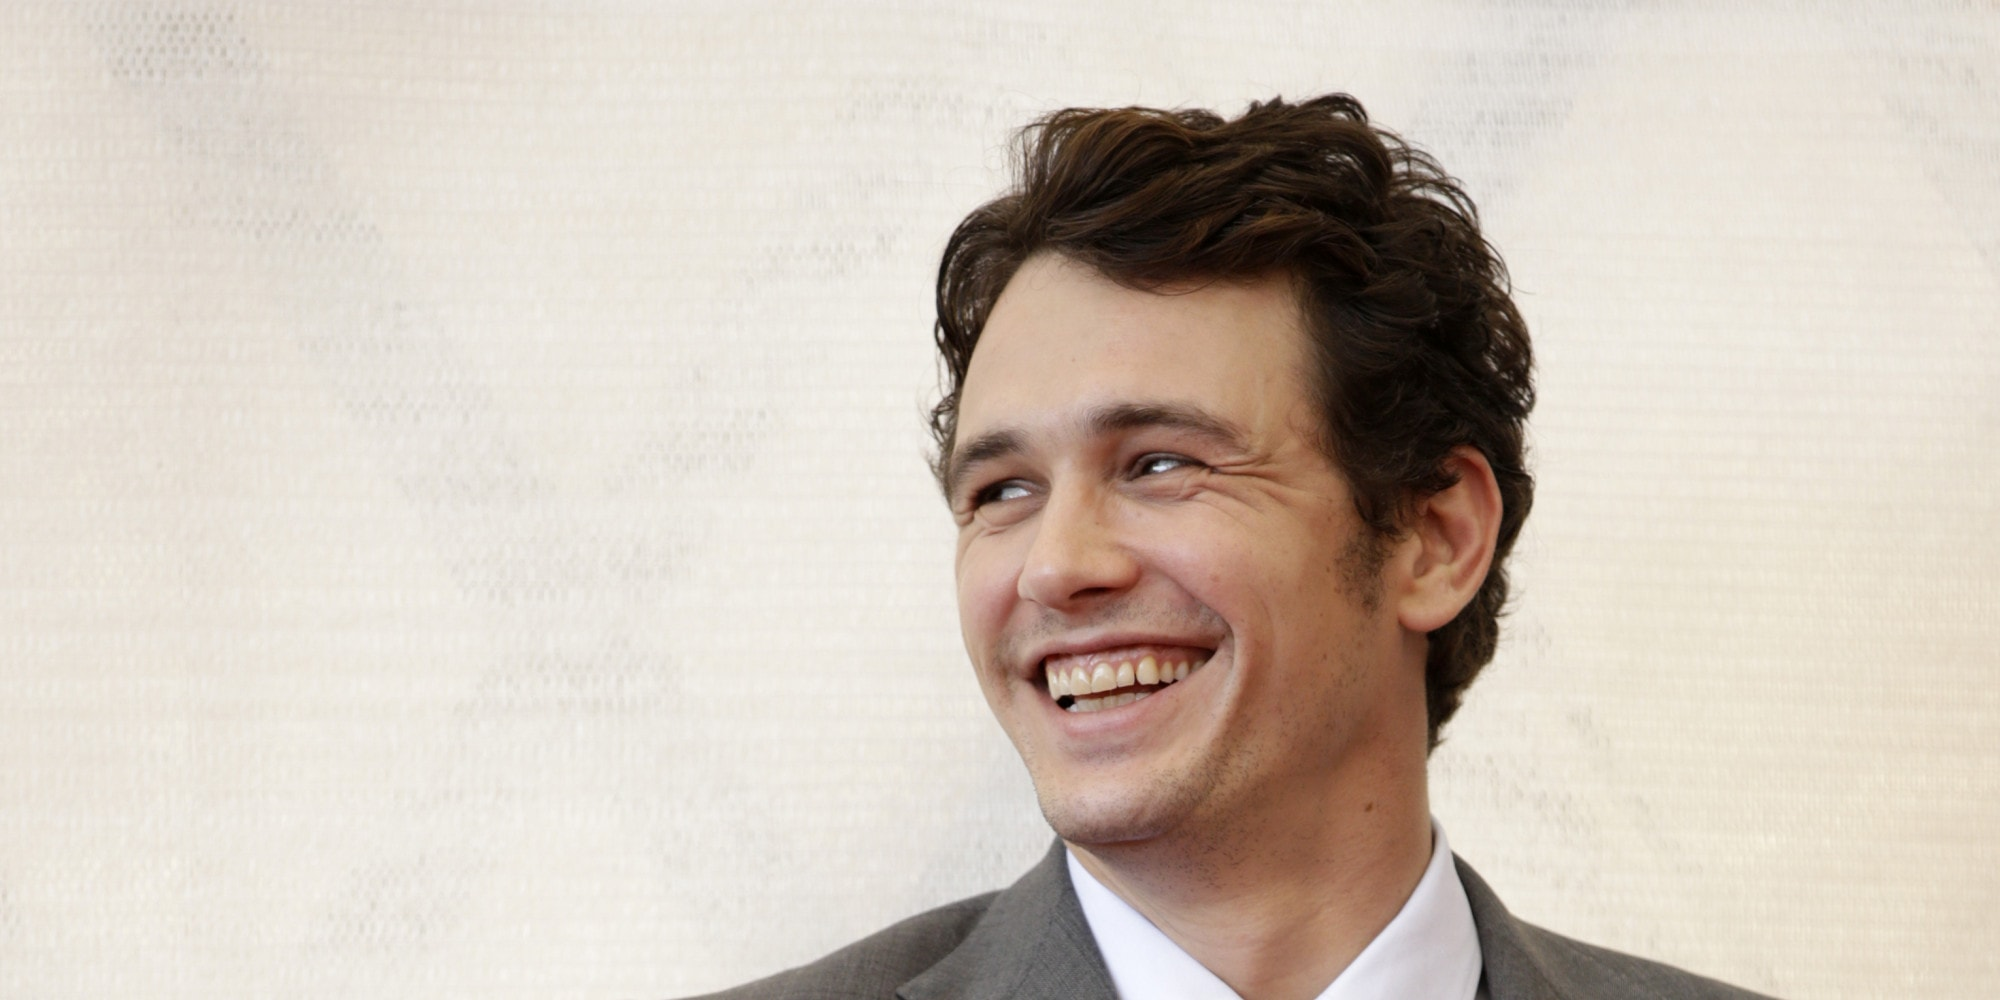 James Franco Background